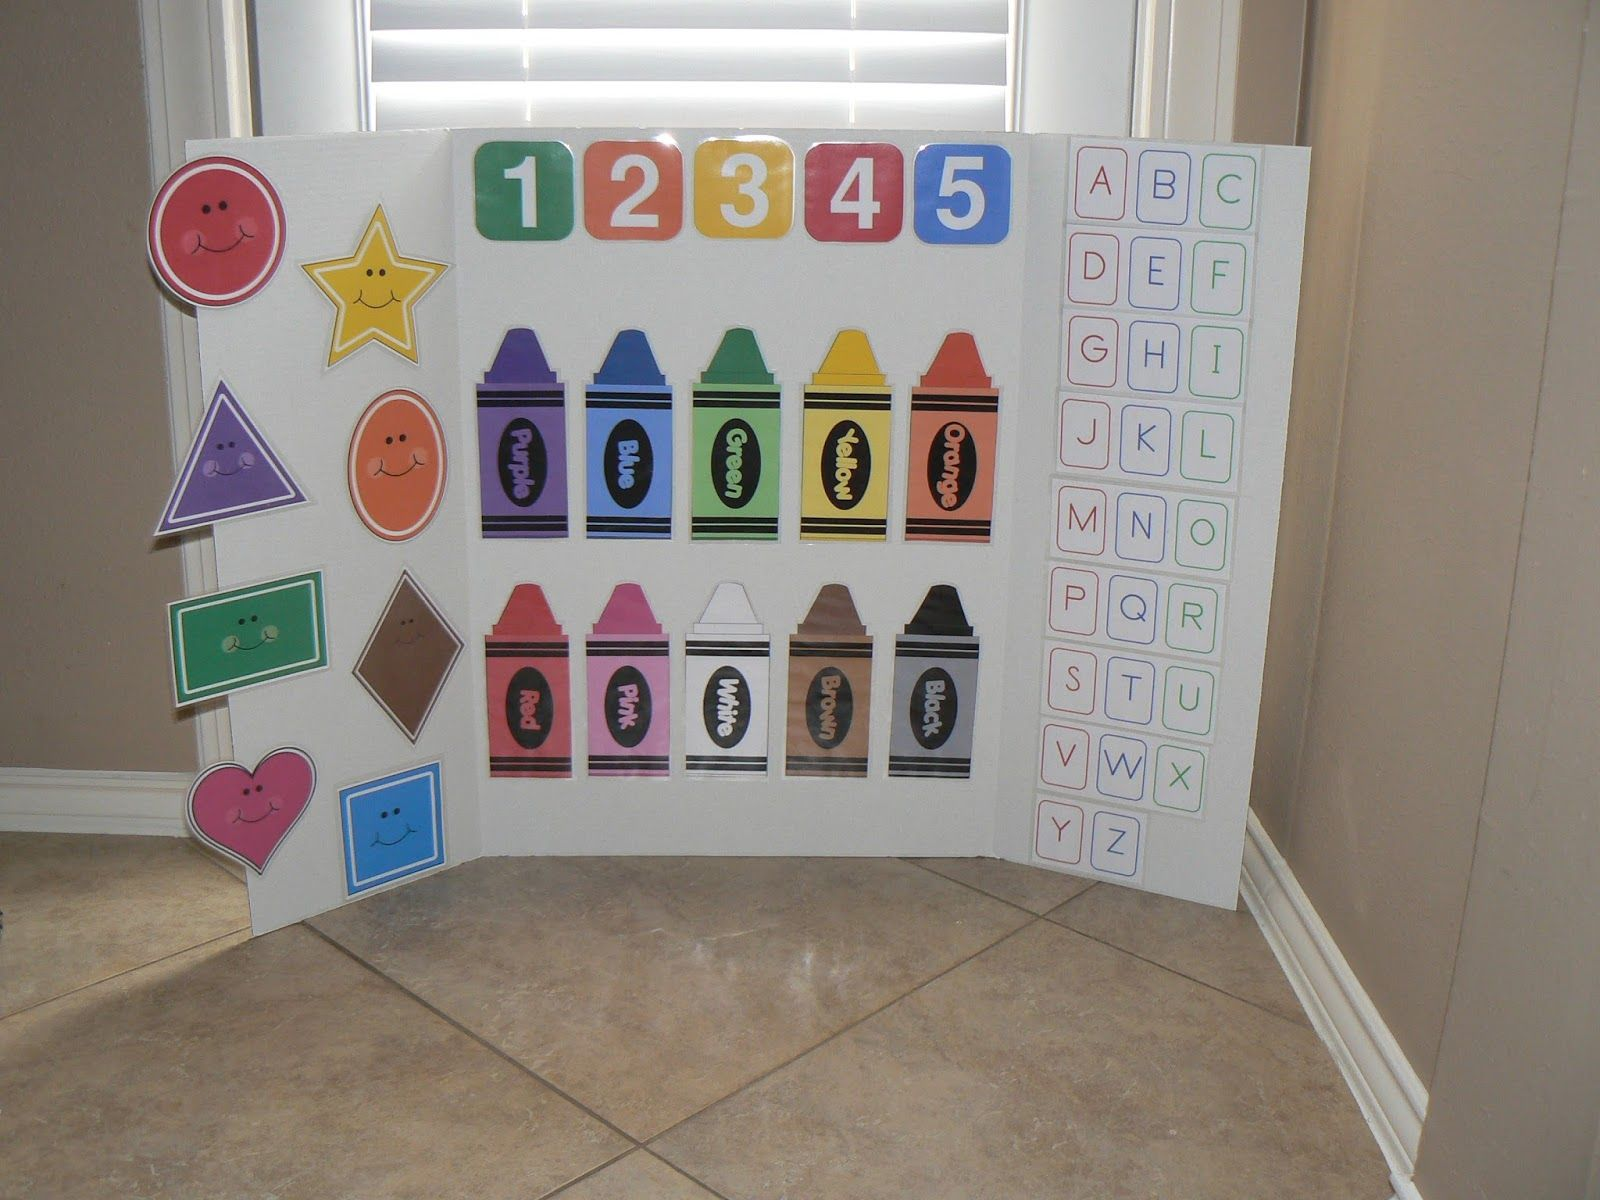 Our Home Creations Preschool Learning Board